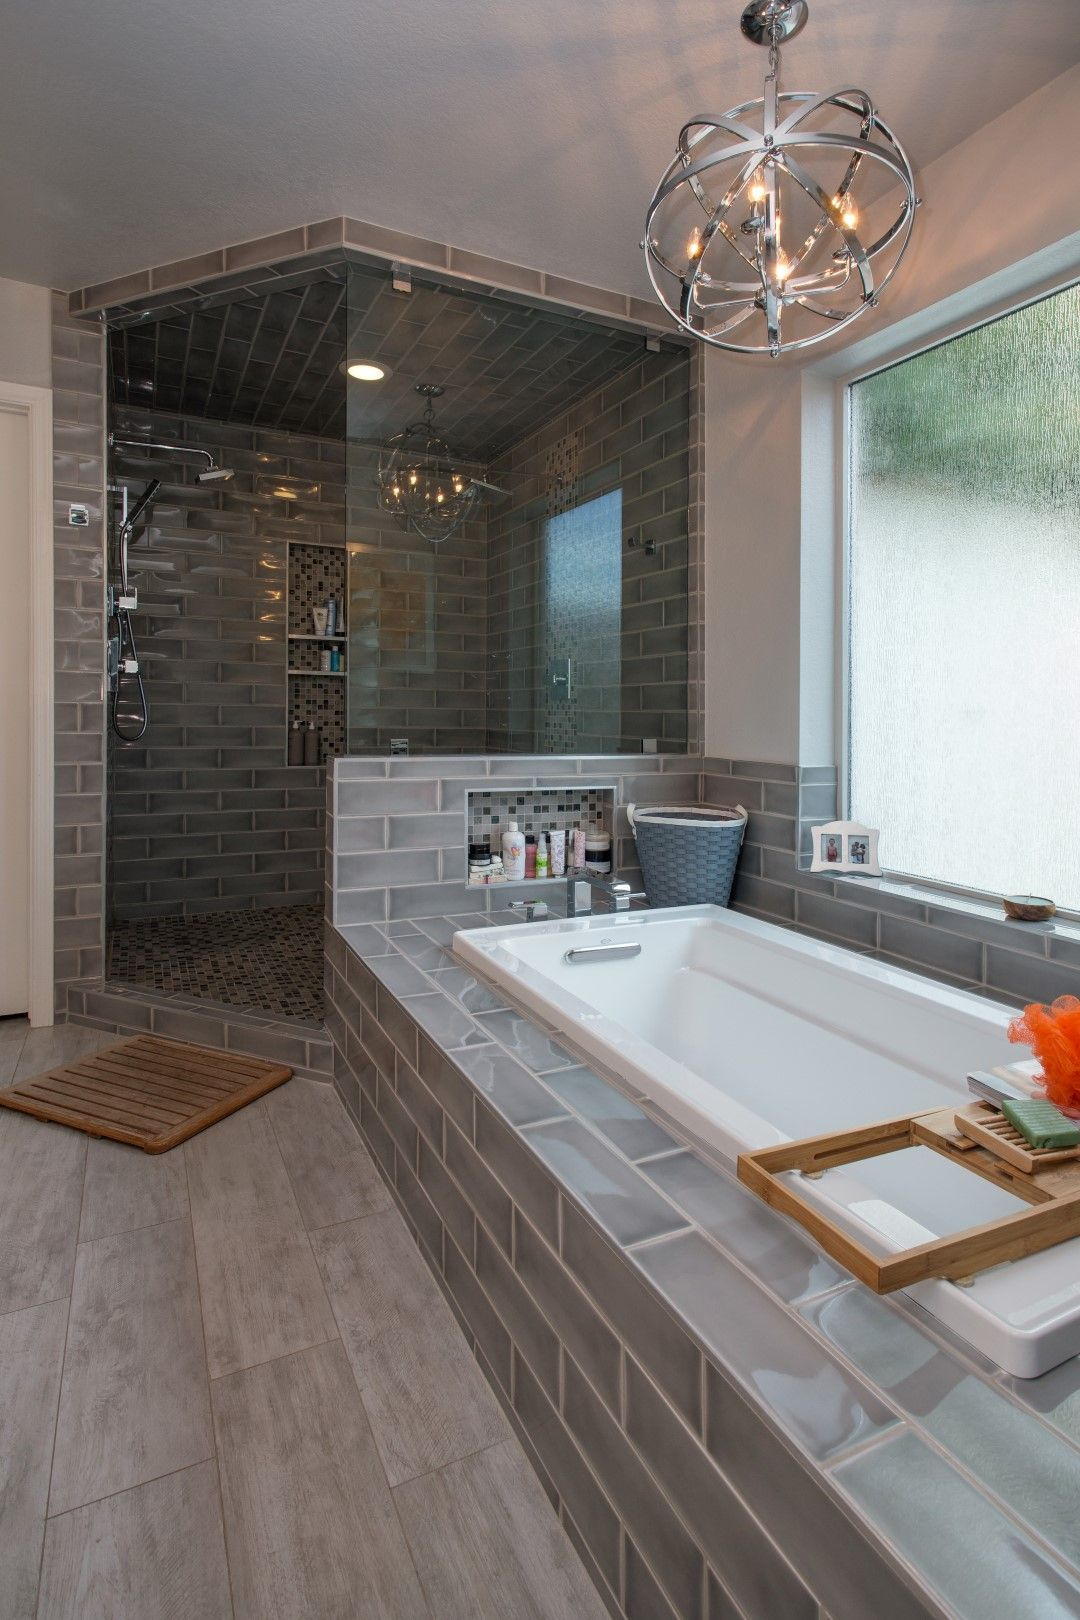 bathroom nh remodels and com remodeling inspiring bathtub idea writerxavier by contractor remodel